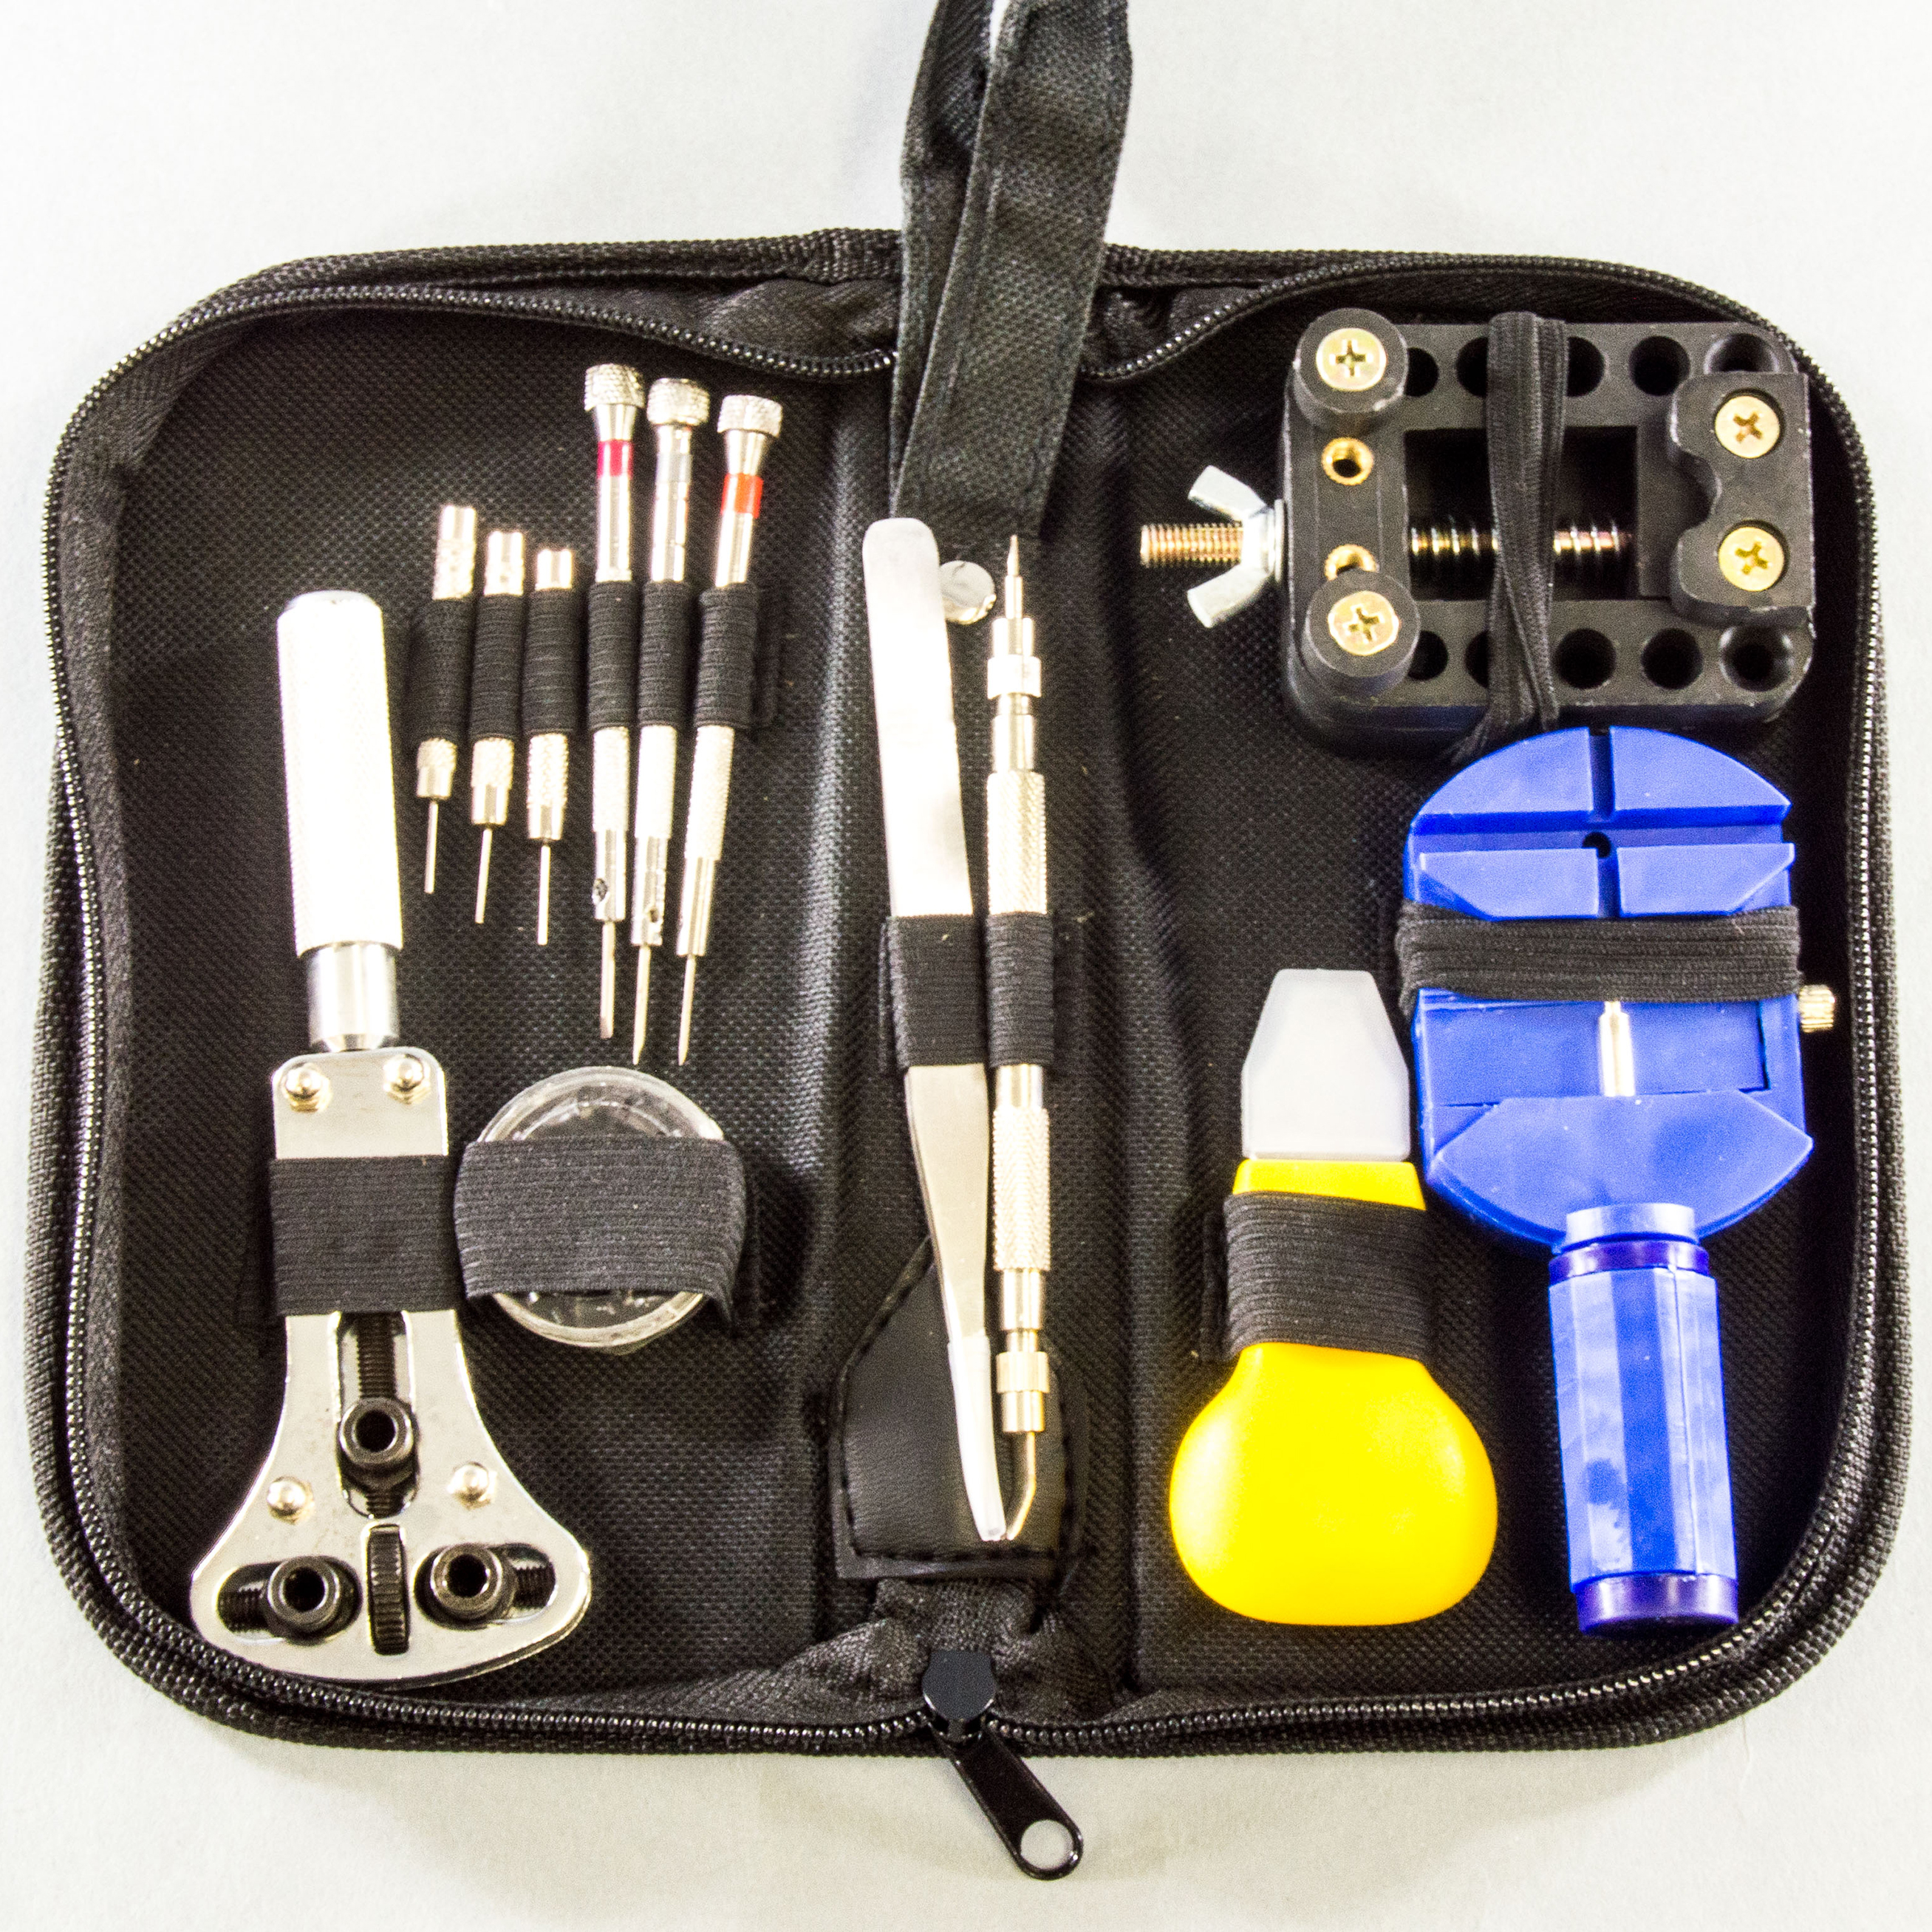 13-Piece Watch Repair Tool Kit With Pouch